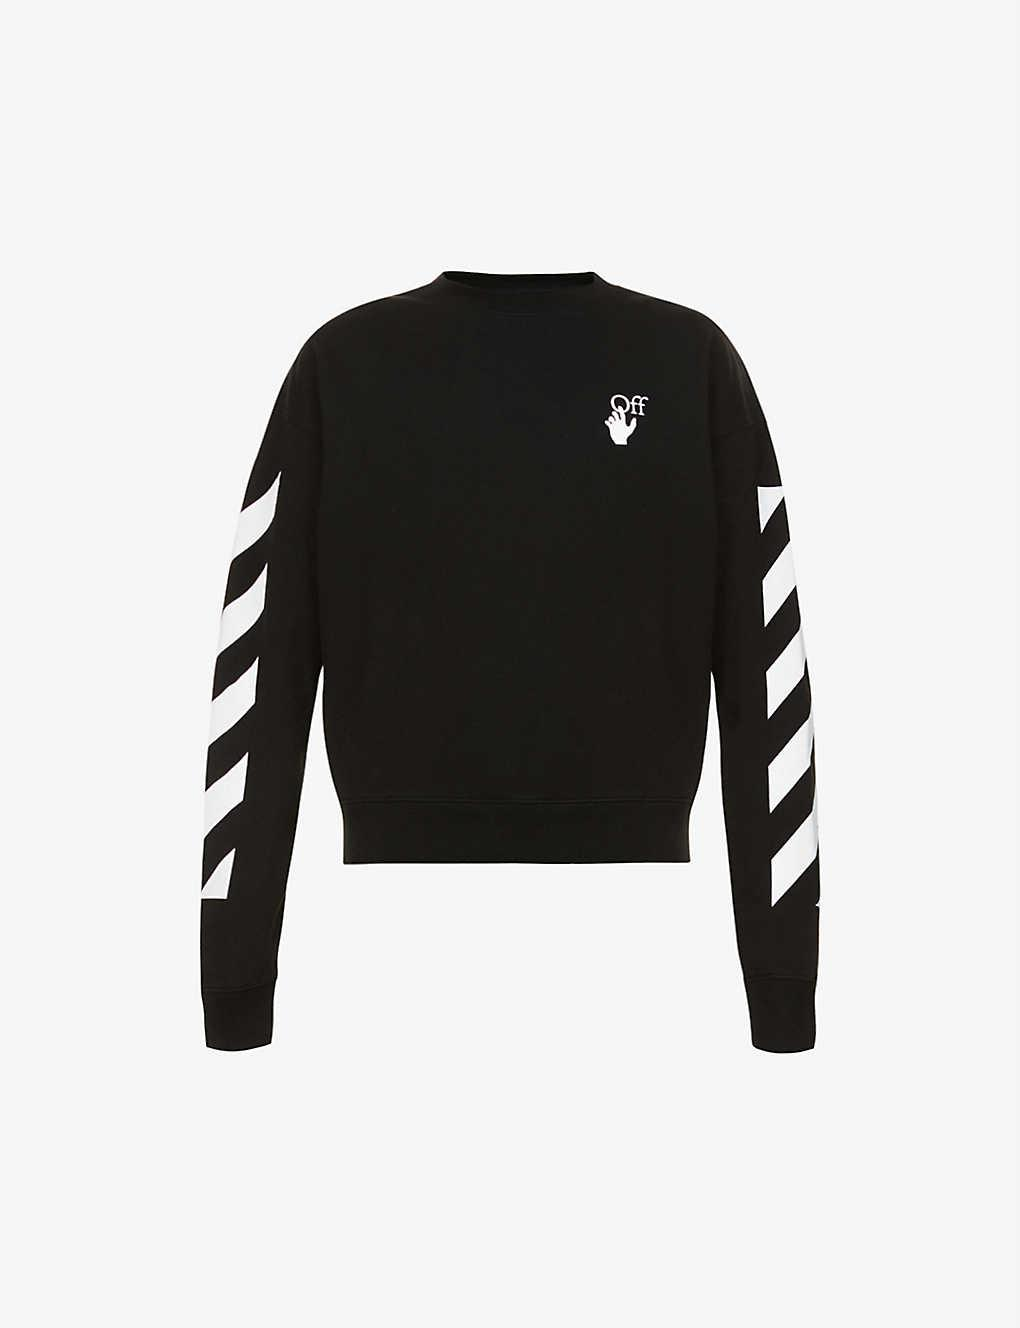 OFF-WHITE C/O VIRGIL ABLOH Agreement graphic-print cotton-jersey sweatshirt